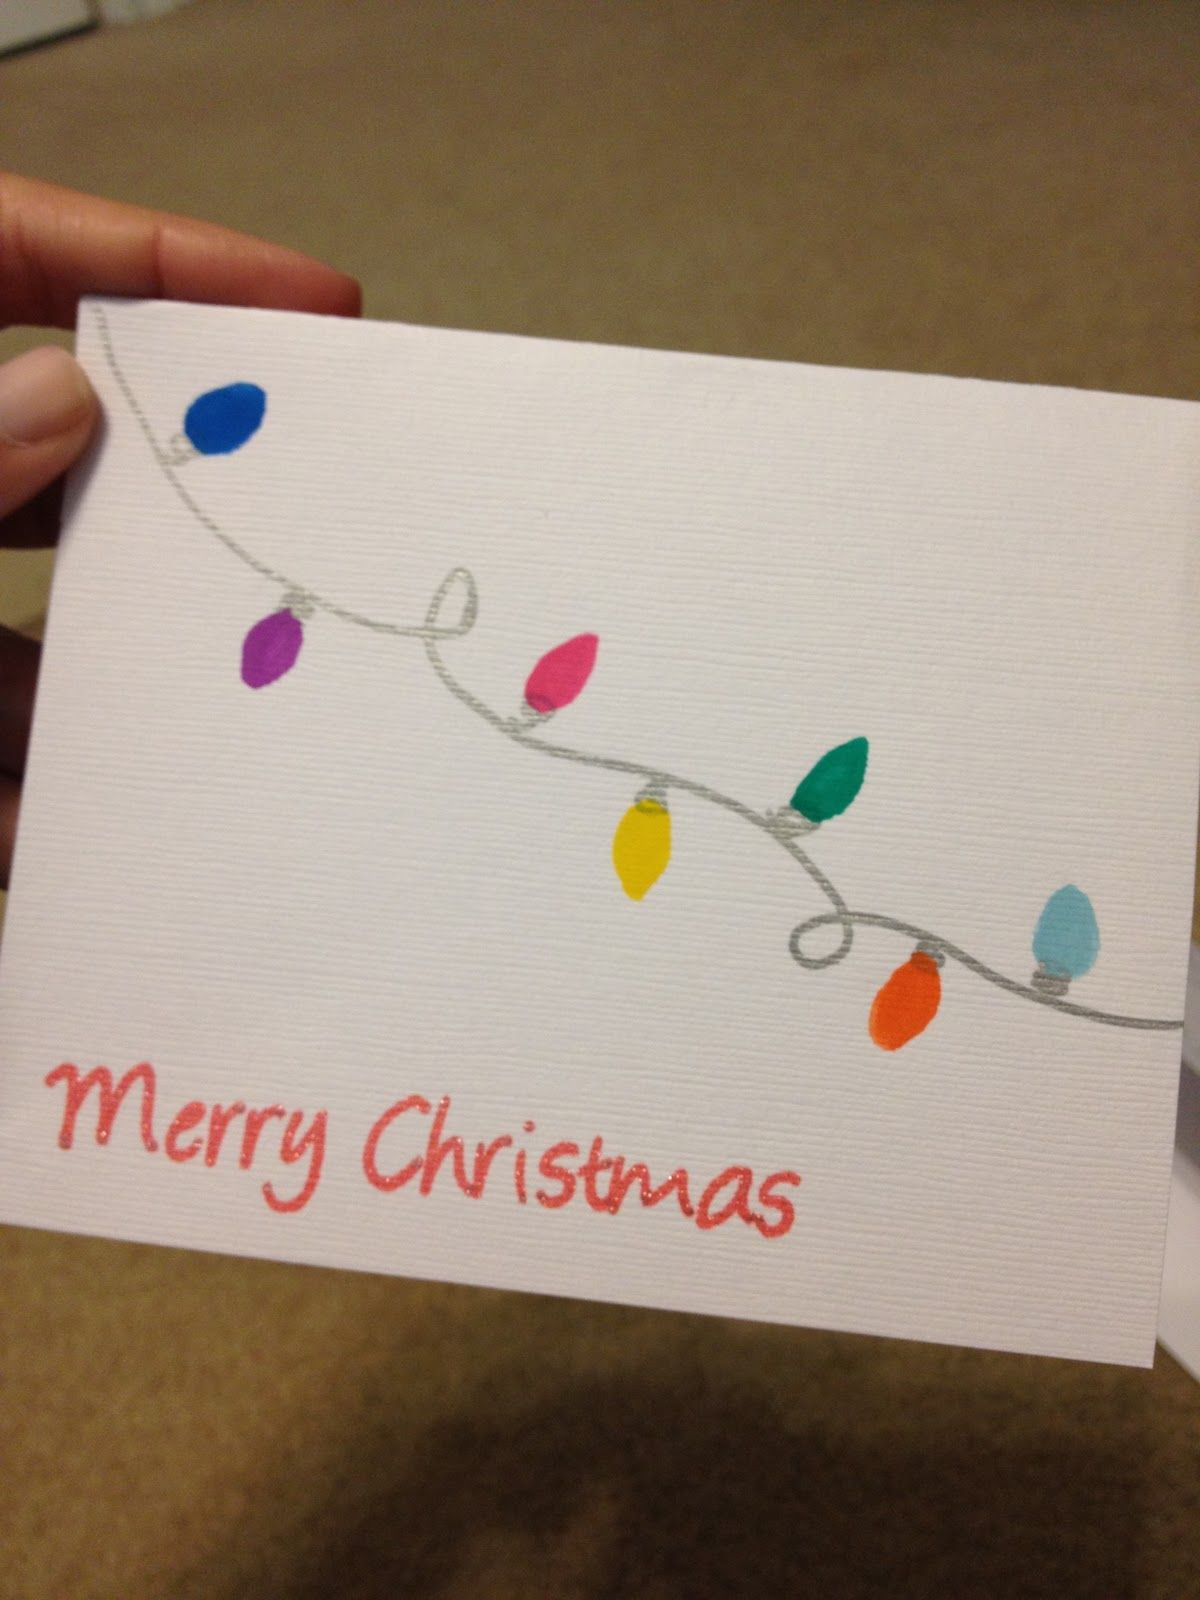 Easy Diy Christmas Cards.When I Went To Hallmark Yesterday To Grab My Christmas Cards